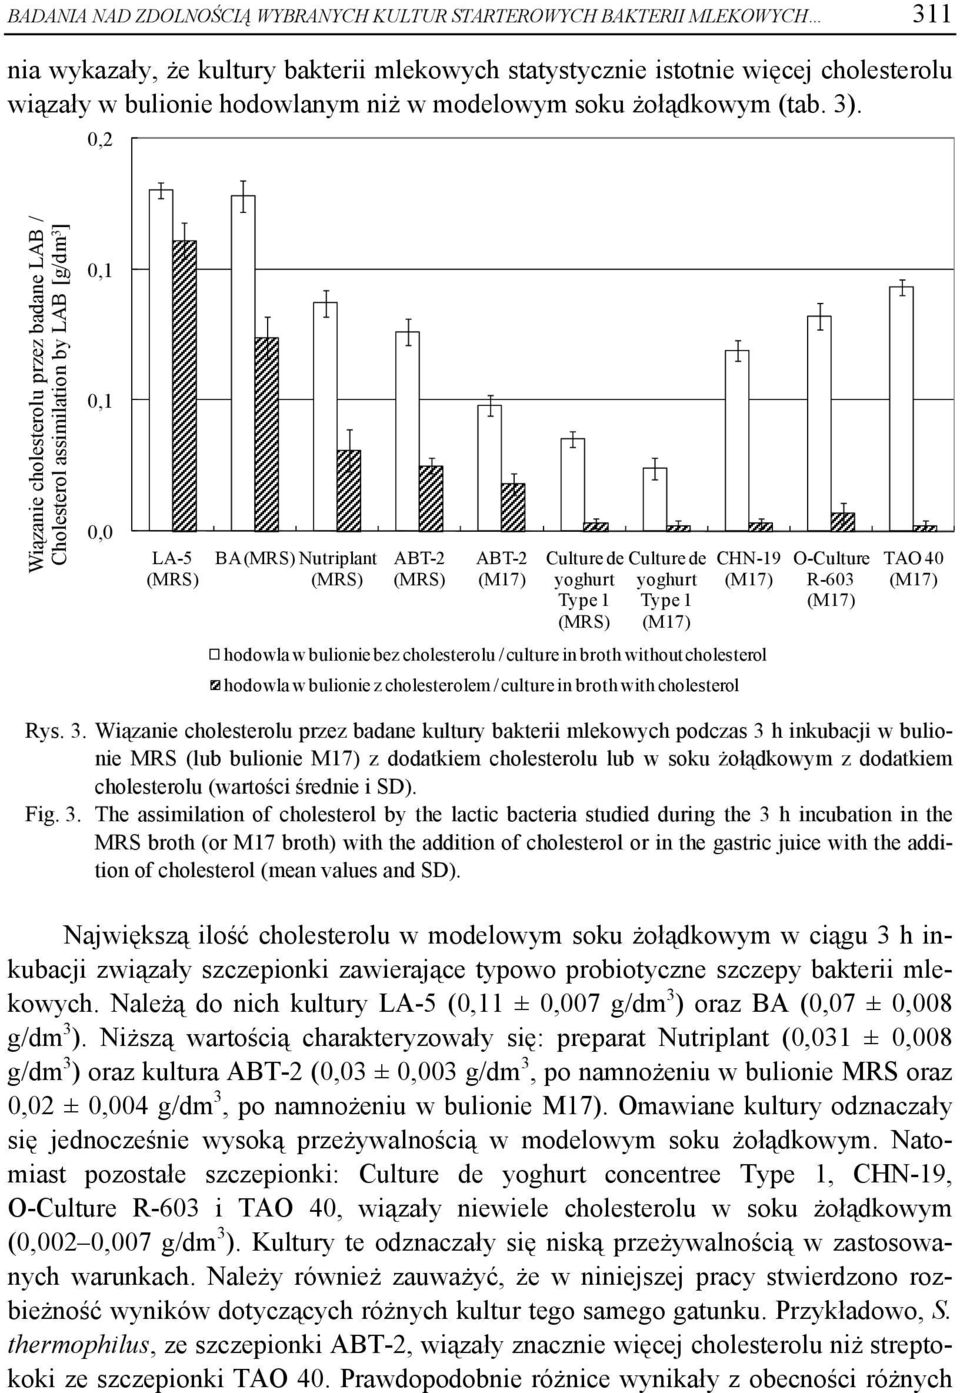 0,2 Wiązanie cholesterolu przez badane LAB / Cholesterol assimilation by LAB [g/dm 3 ] 0,1 0,1 0,0 LA-5 BA Nutriplant Culture de yoghurt Type 1 Culture de yoghurt Type 1 CHN-19 O-Culture R-603 TAO 40